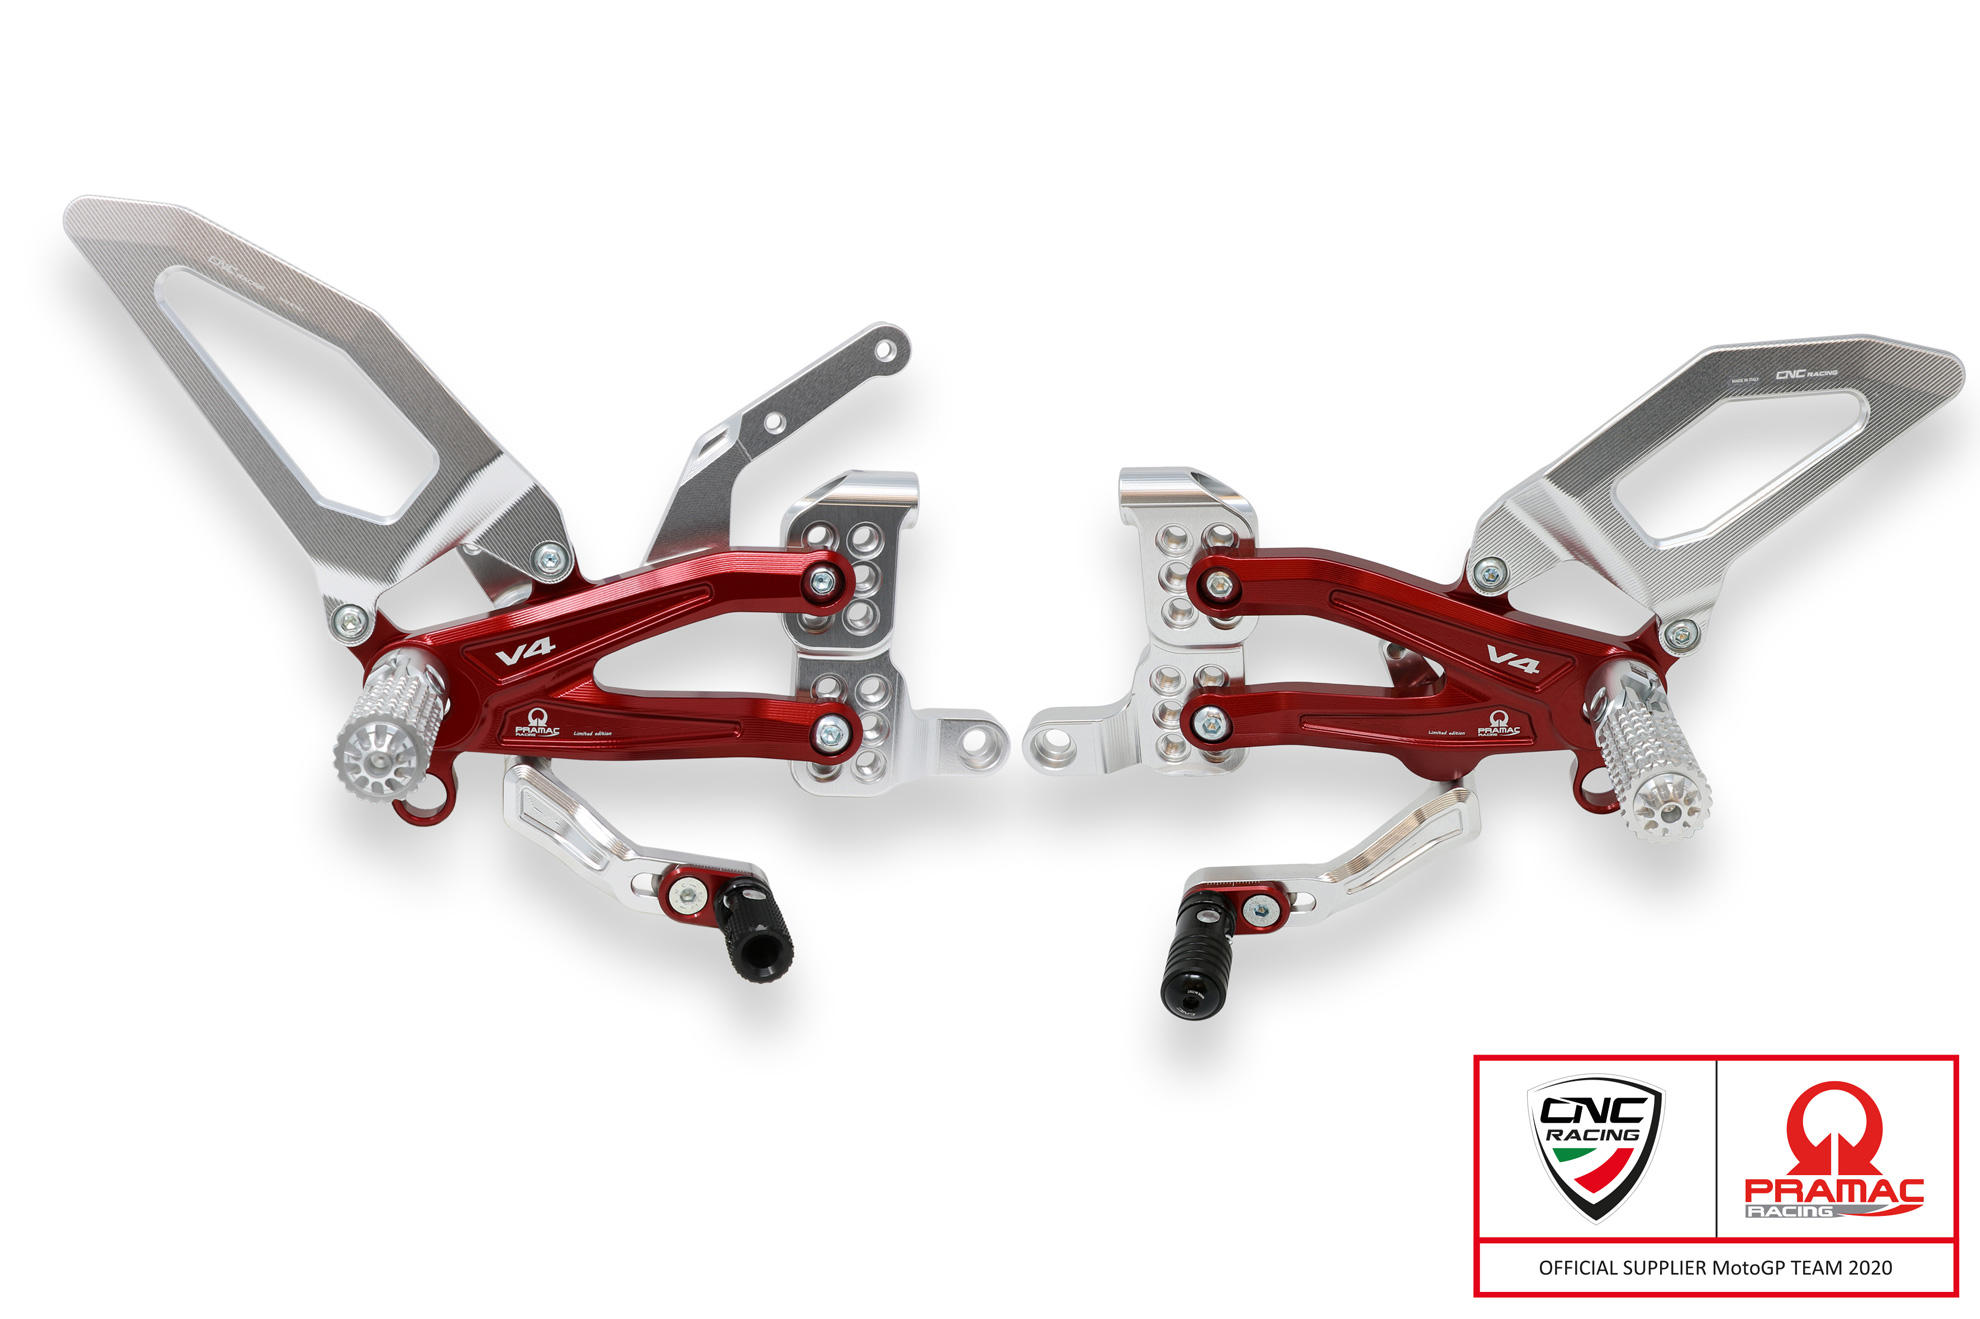 CNC Racing PRAMAC RACING LIMITED EDITION RPS Adjustable Rearset for the Ducati Streetfighter V4